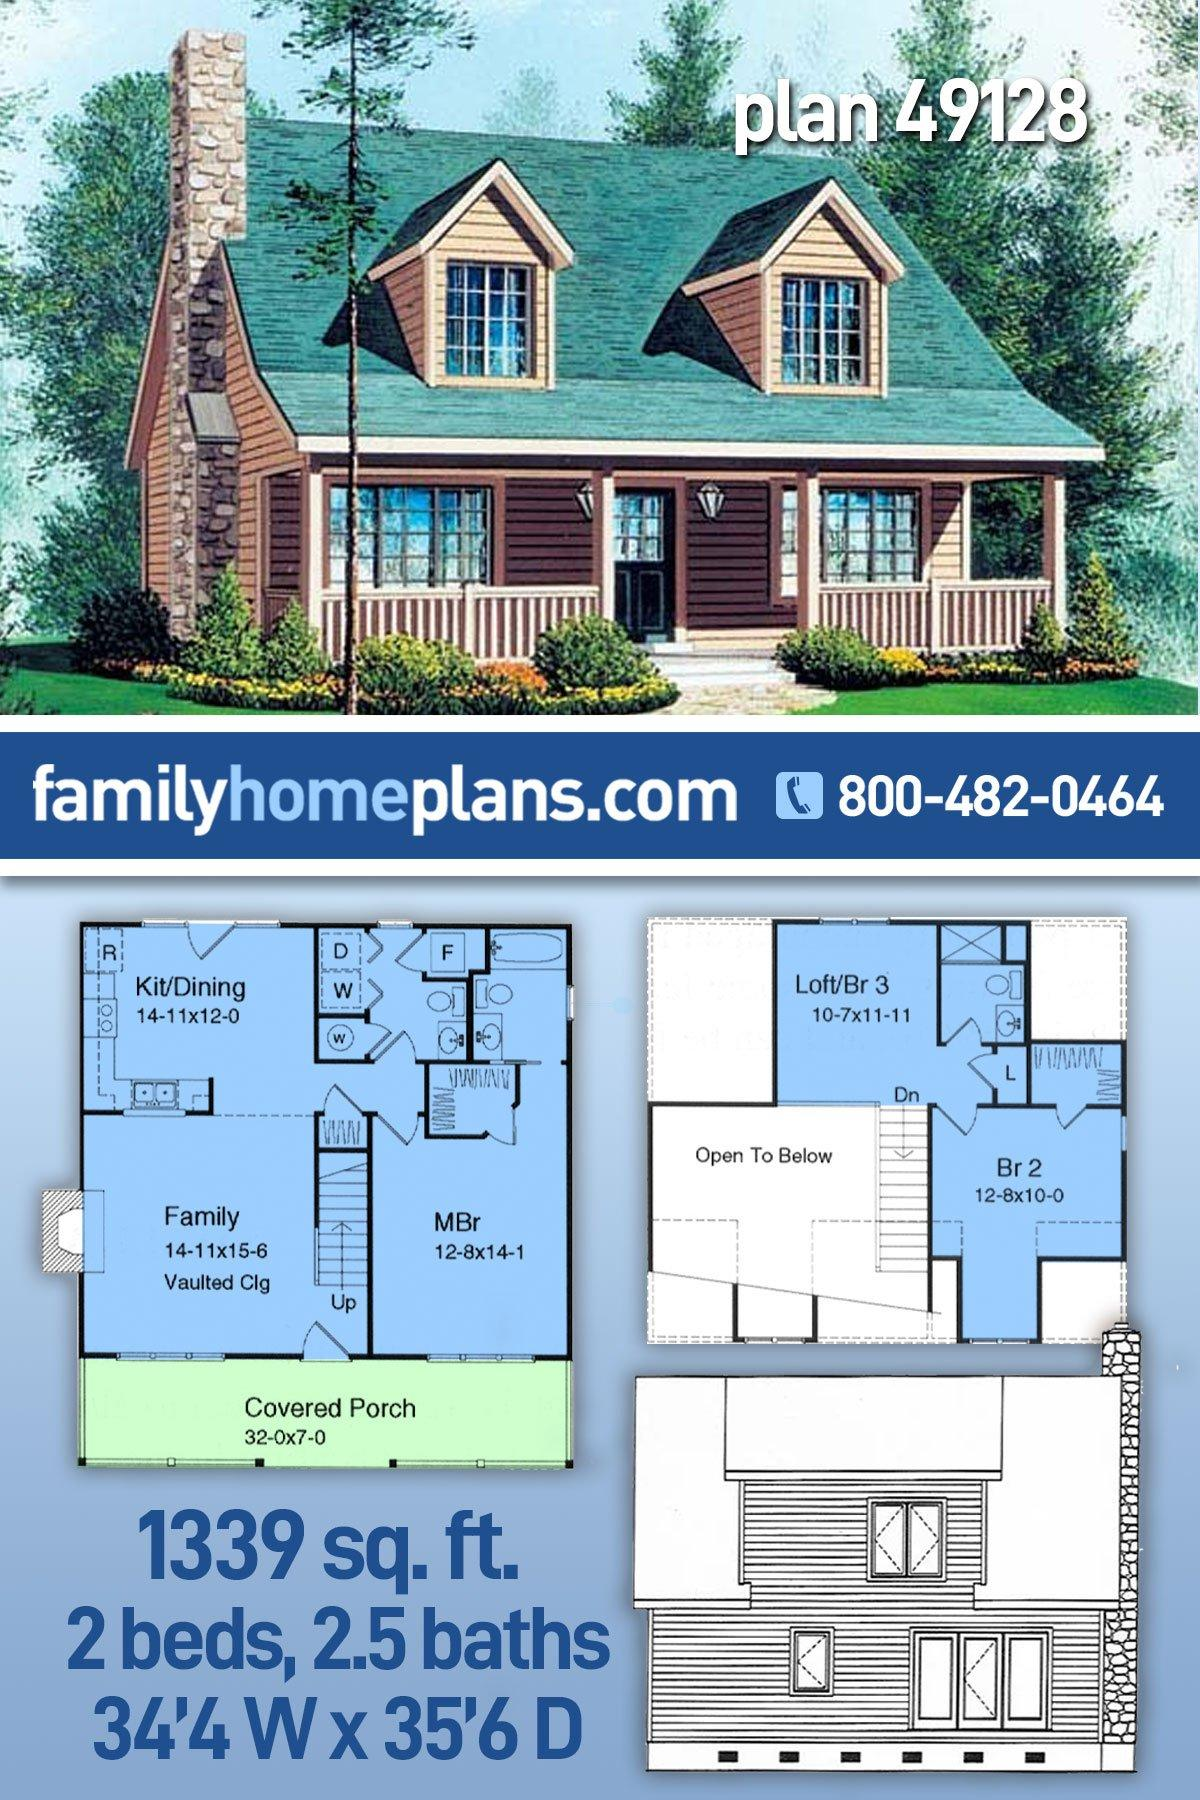 Cabin, Cape Cod, Country House Plan 49128 with 2 Beds, 3 Baths